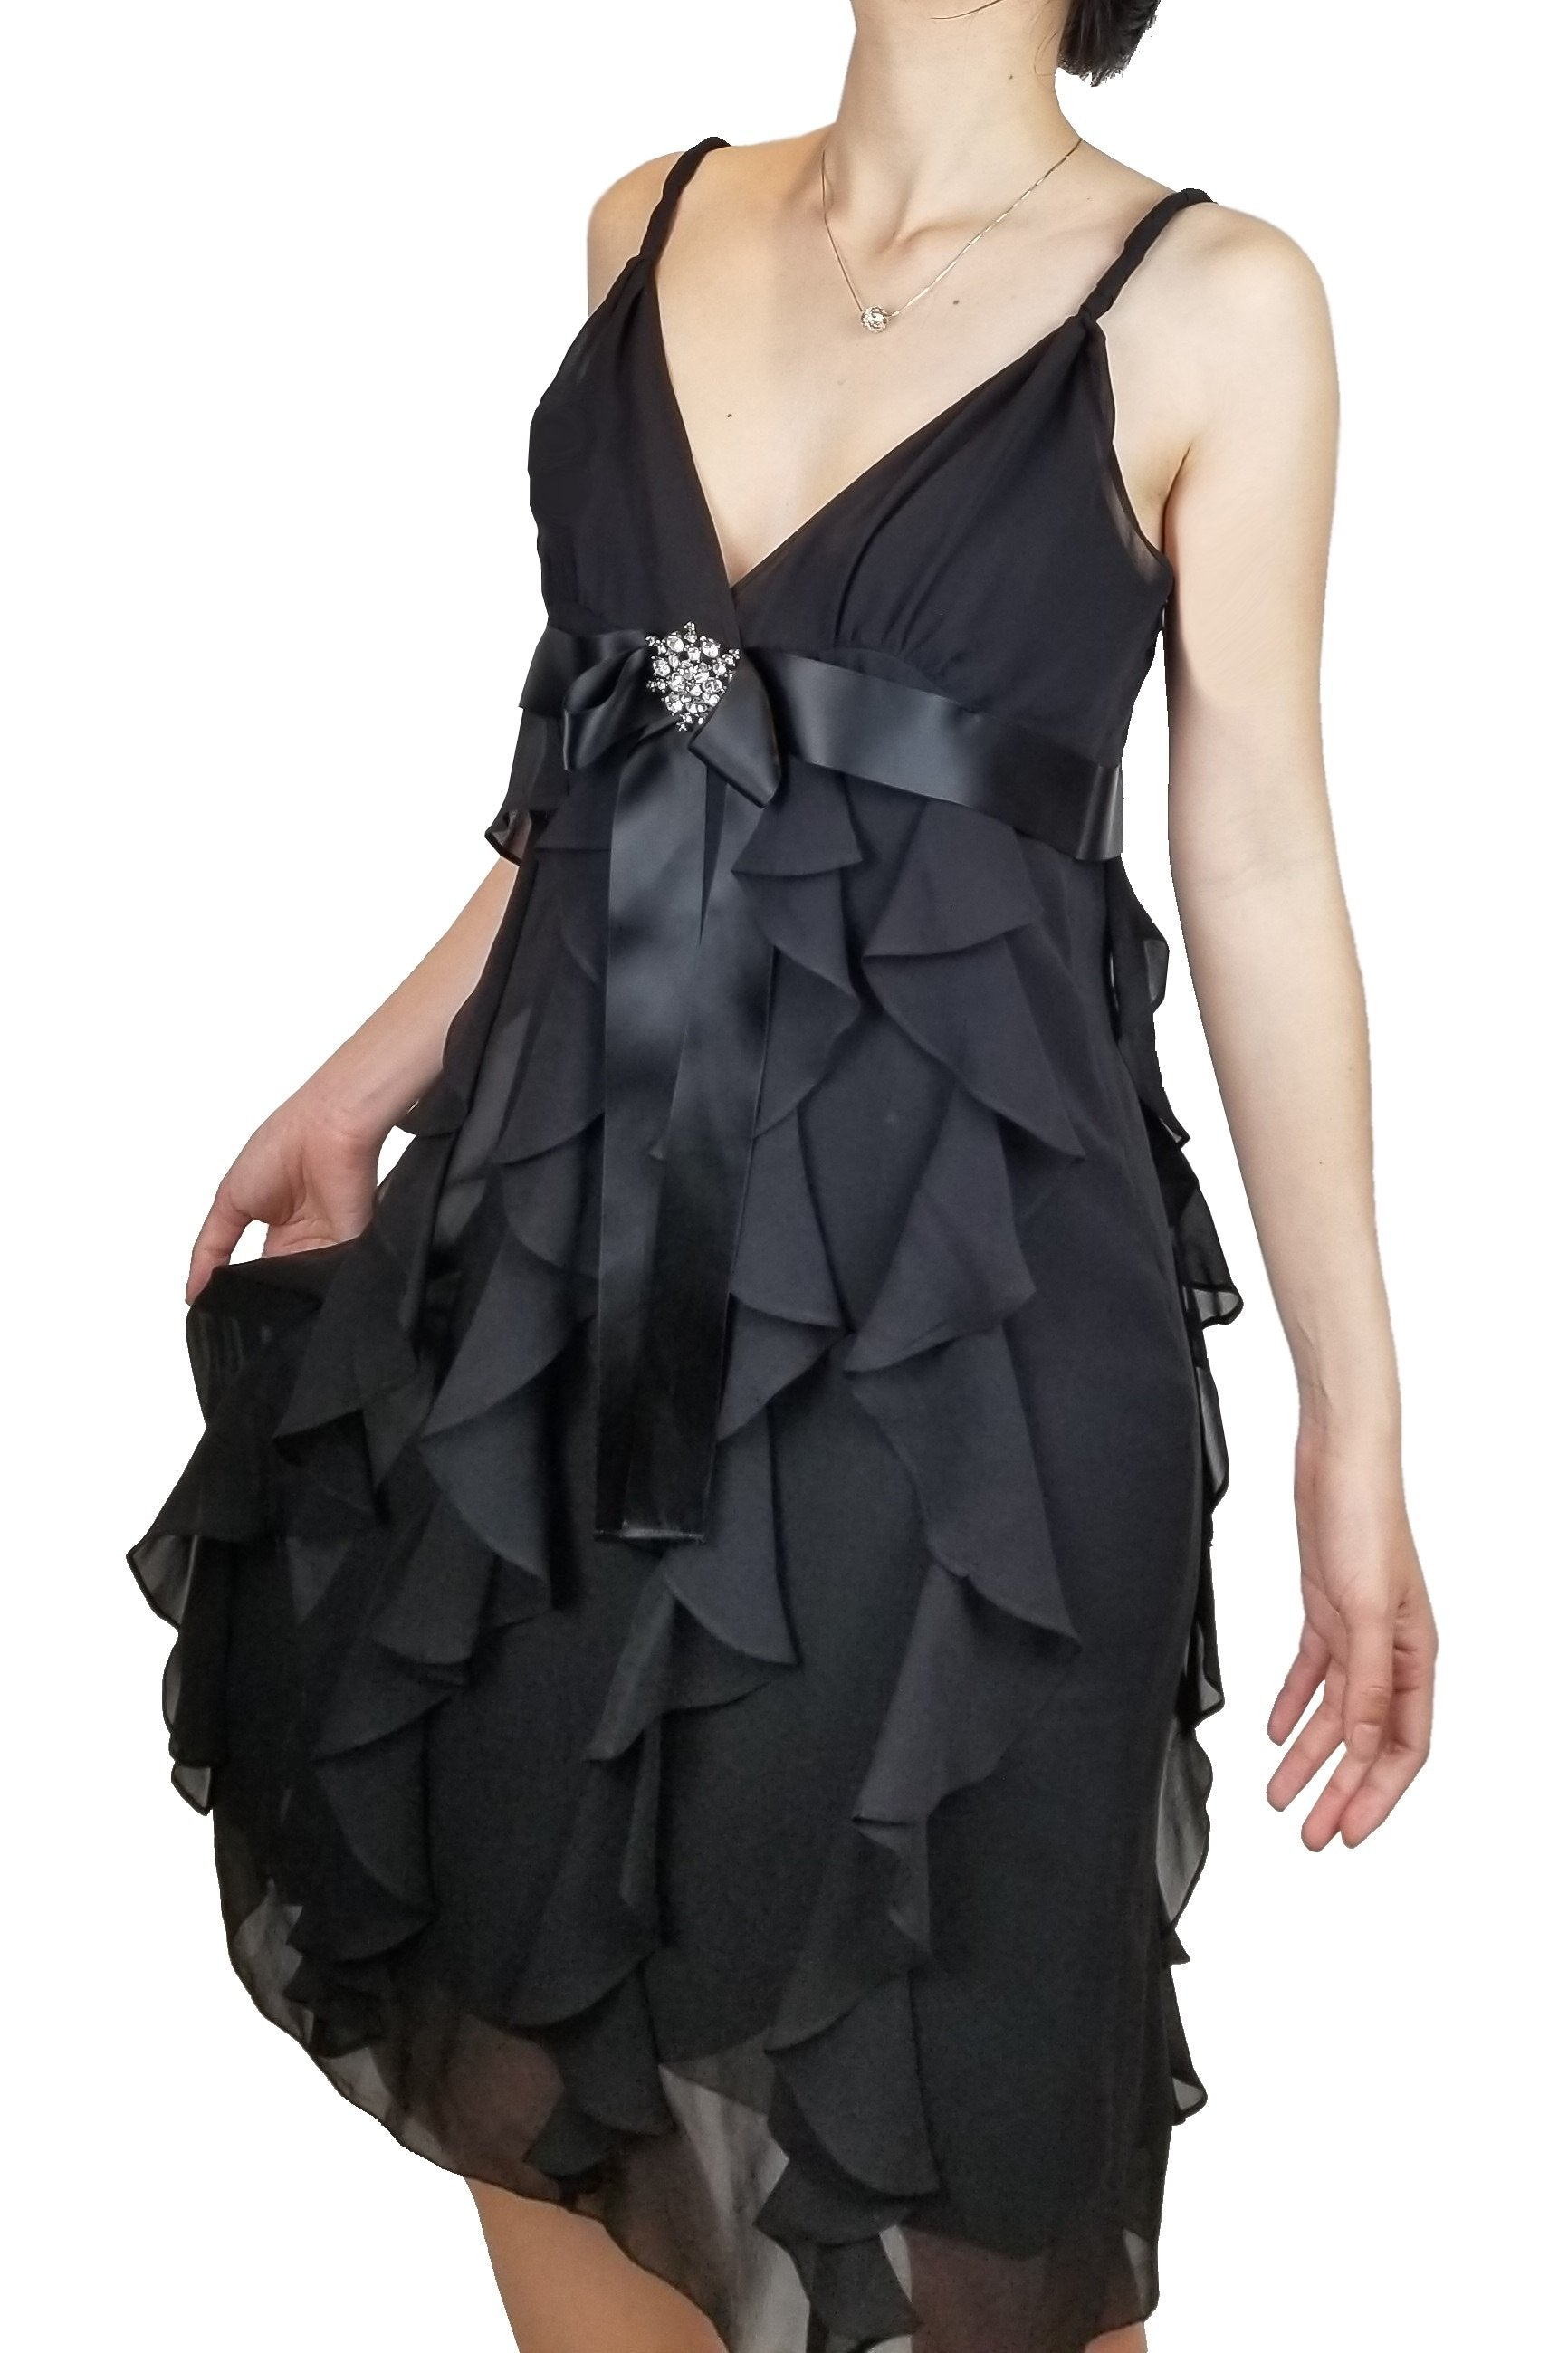 BCBGMAXAZRIA Flowy Cocktail Dress with Front Crystal Tie, Look and feel your best in this flowy cocktail dress perfect. Its front crystal bow tie at the waist accentuates the positives of your figure in this., Black, 71% Cotton 27% Polyester 2% Spandex , women's Dresses & Rompers, women's Black Dresses & Rompers, BCBGMAXAZRIA women's Dresses & Rompers, dress, women's party black dress, women's black designer's formal dress, black prom dress, fashion, spaghetti strapped black dress, featured